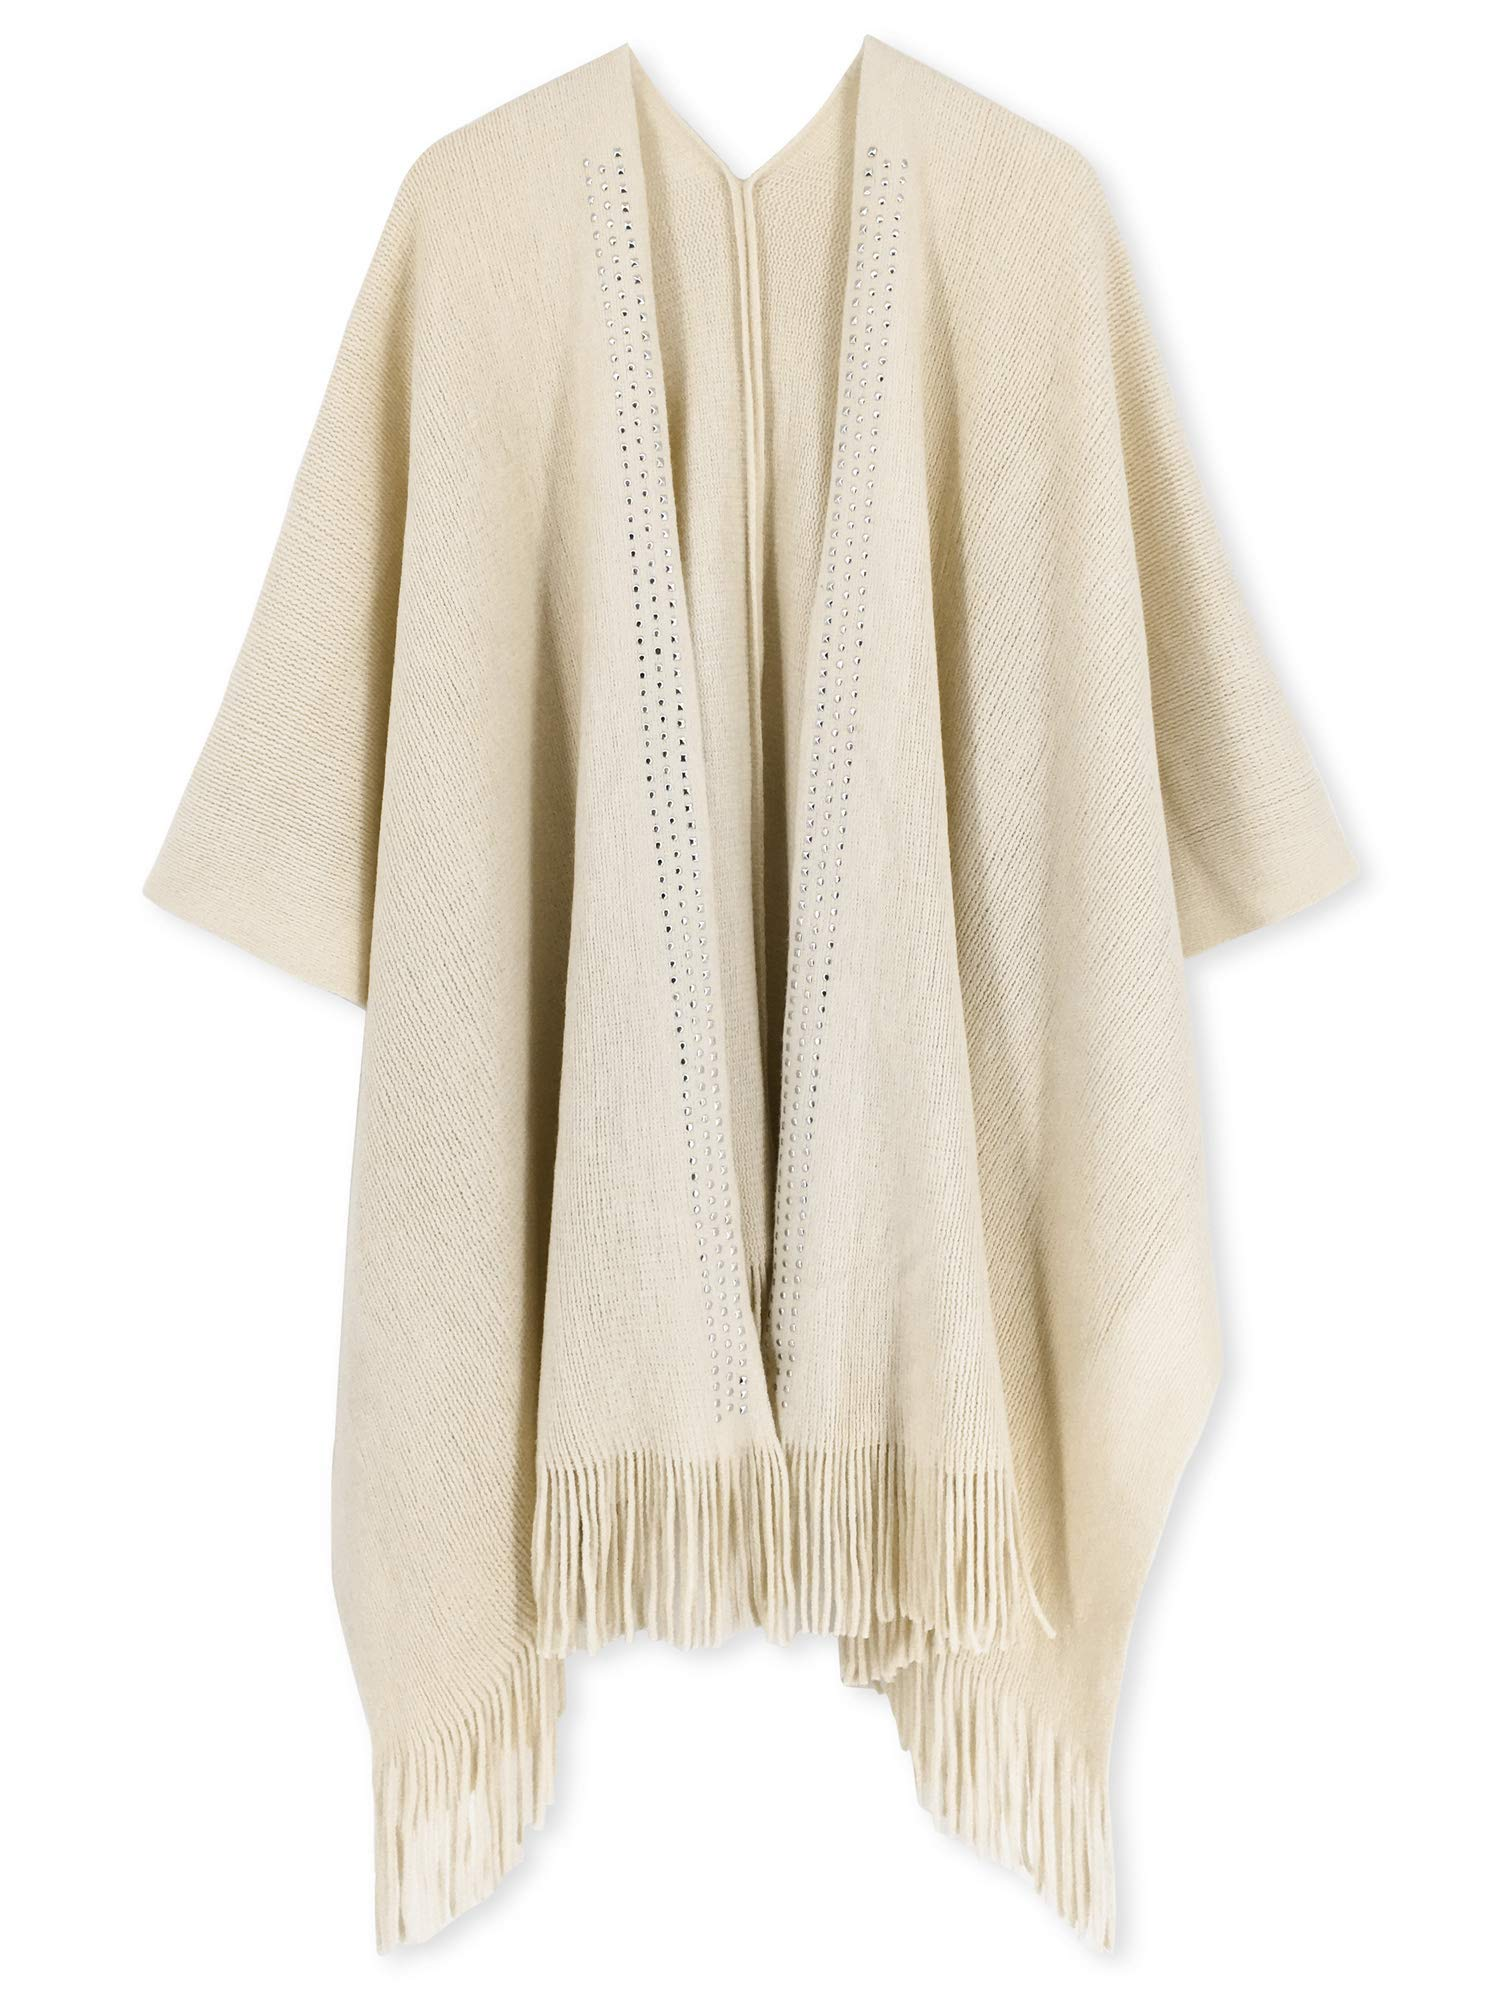 Women Poncho Shawl Cardigan Open Front Elegant Cape Wrap by Moss Rose (Image #1)